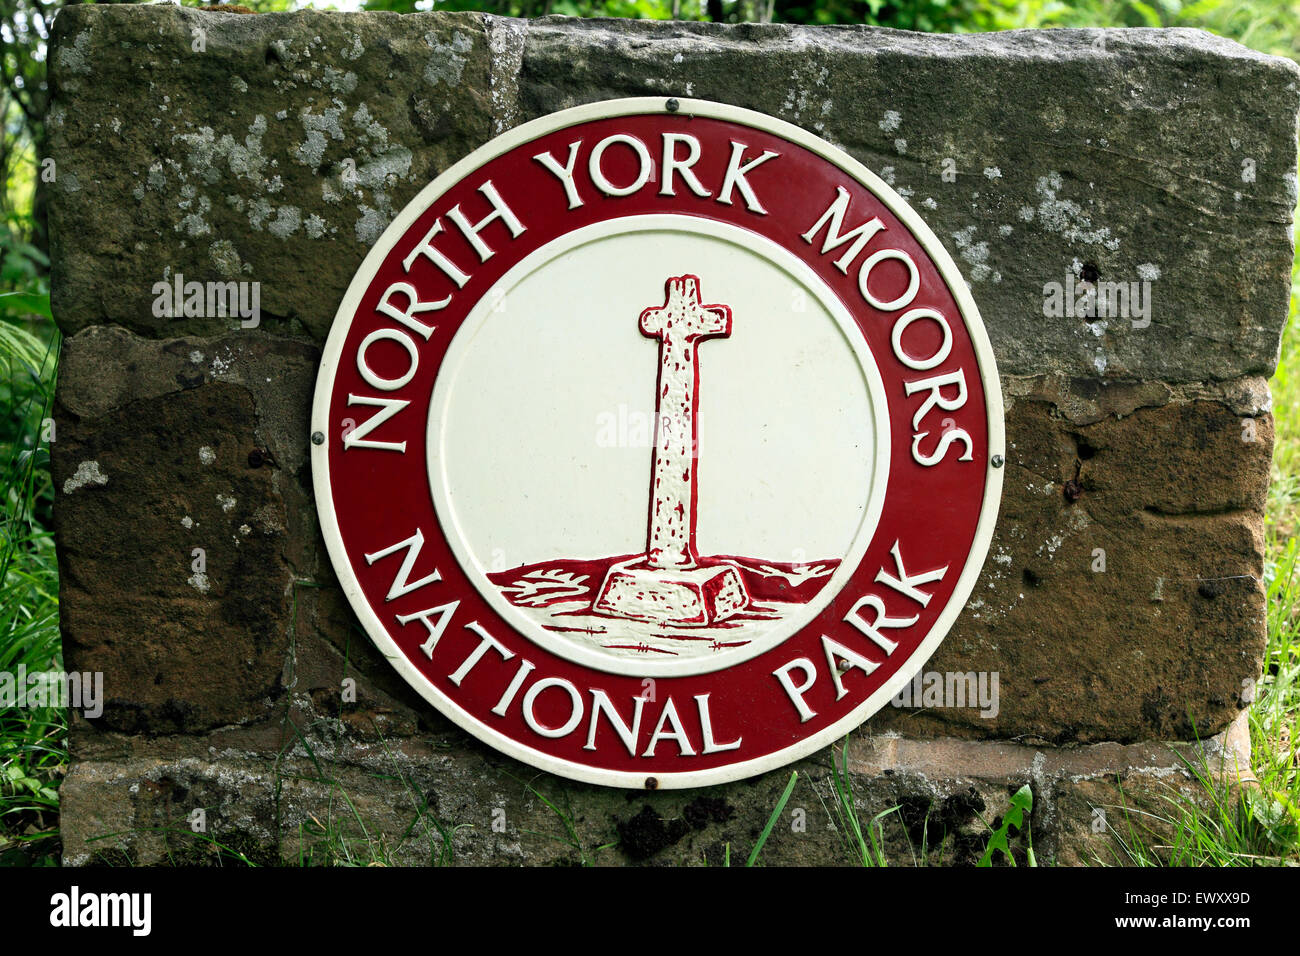 North York Moors National Park Grenze Zeichen, Logo, in der Nähe von Hutton-le-Hole, Hutton-le-Hole, Yorkshire Stockbild